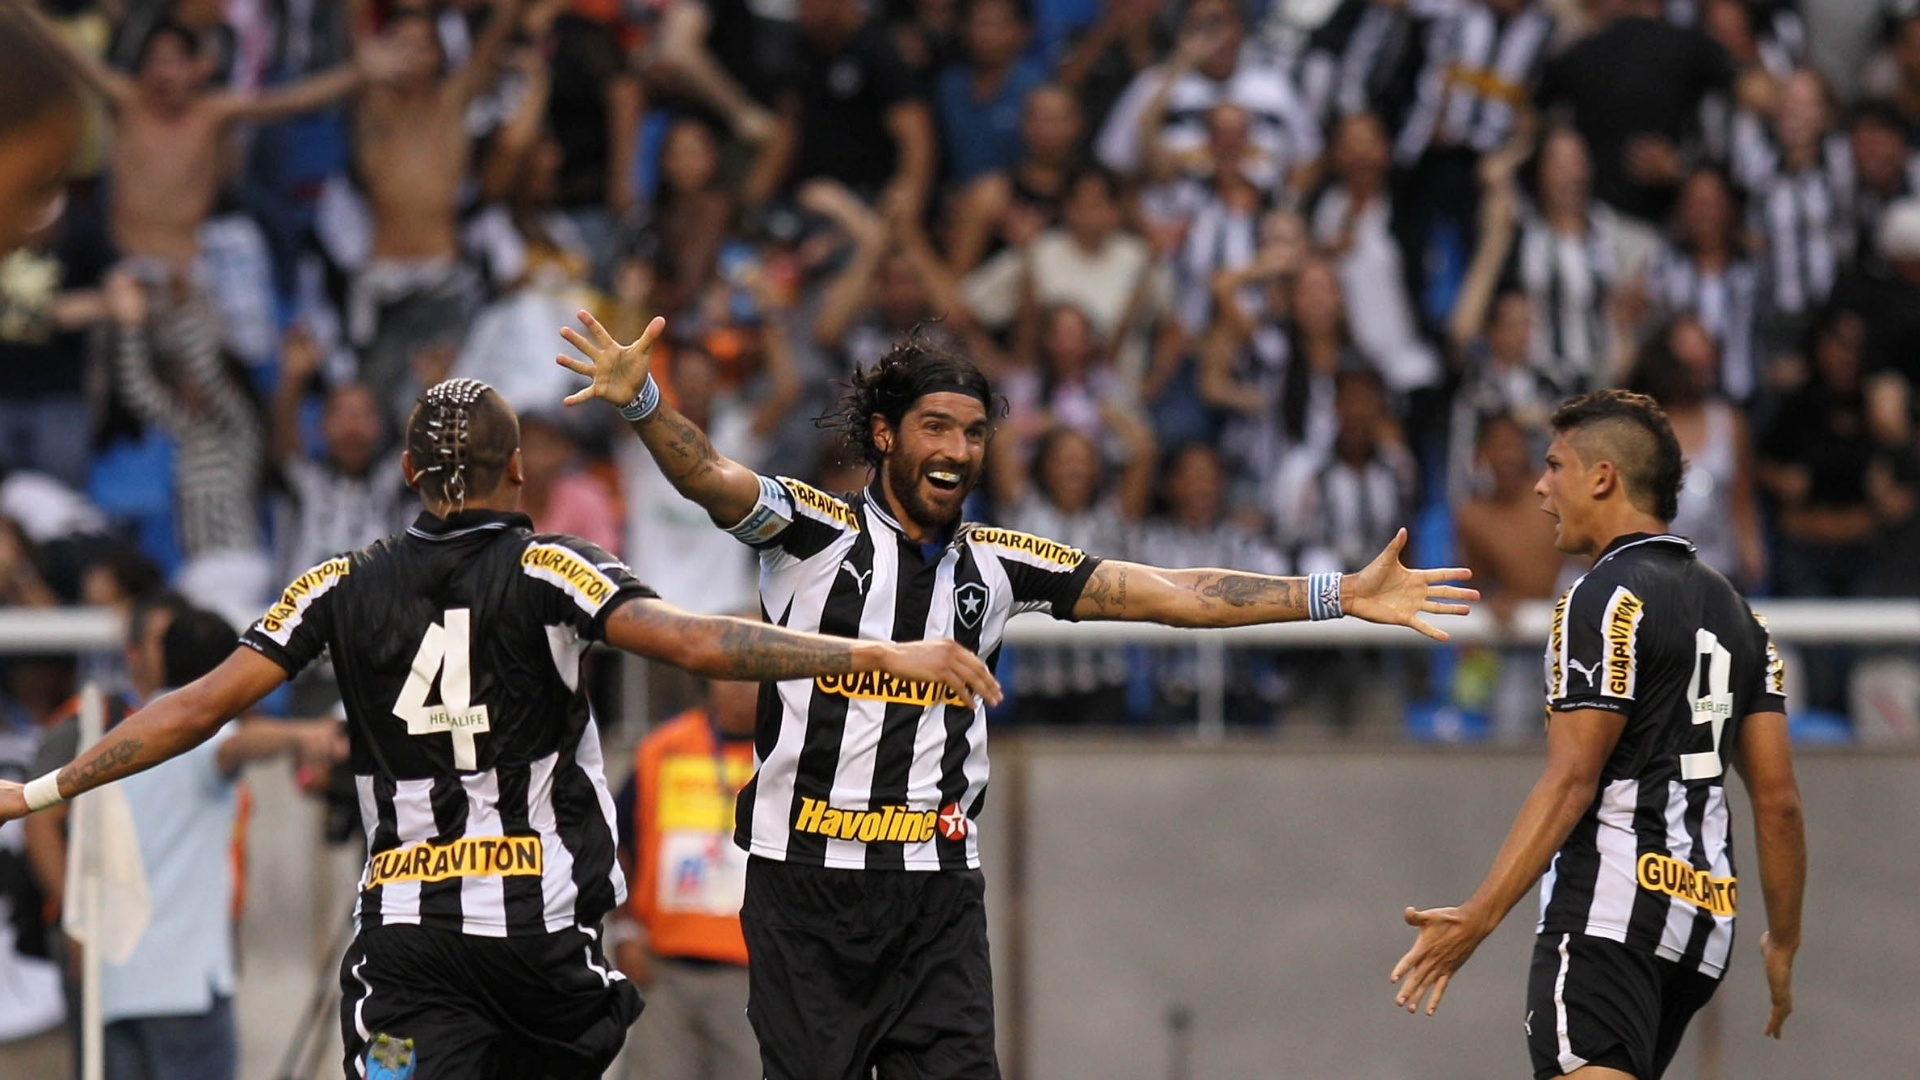 Jogadores do Botafogo comemoram o segundo gol de Loco Abreu no clssico contra o Vasco, no estdio do Engenho